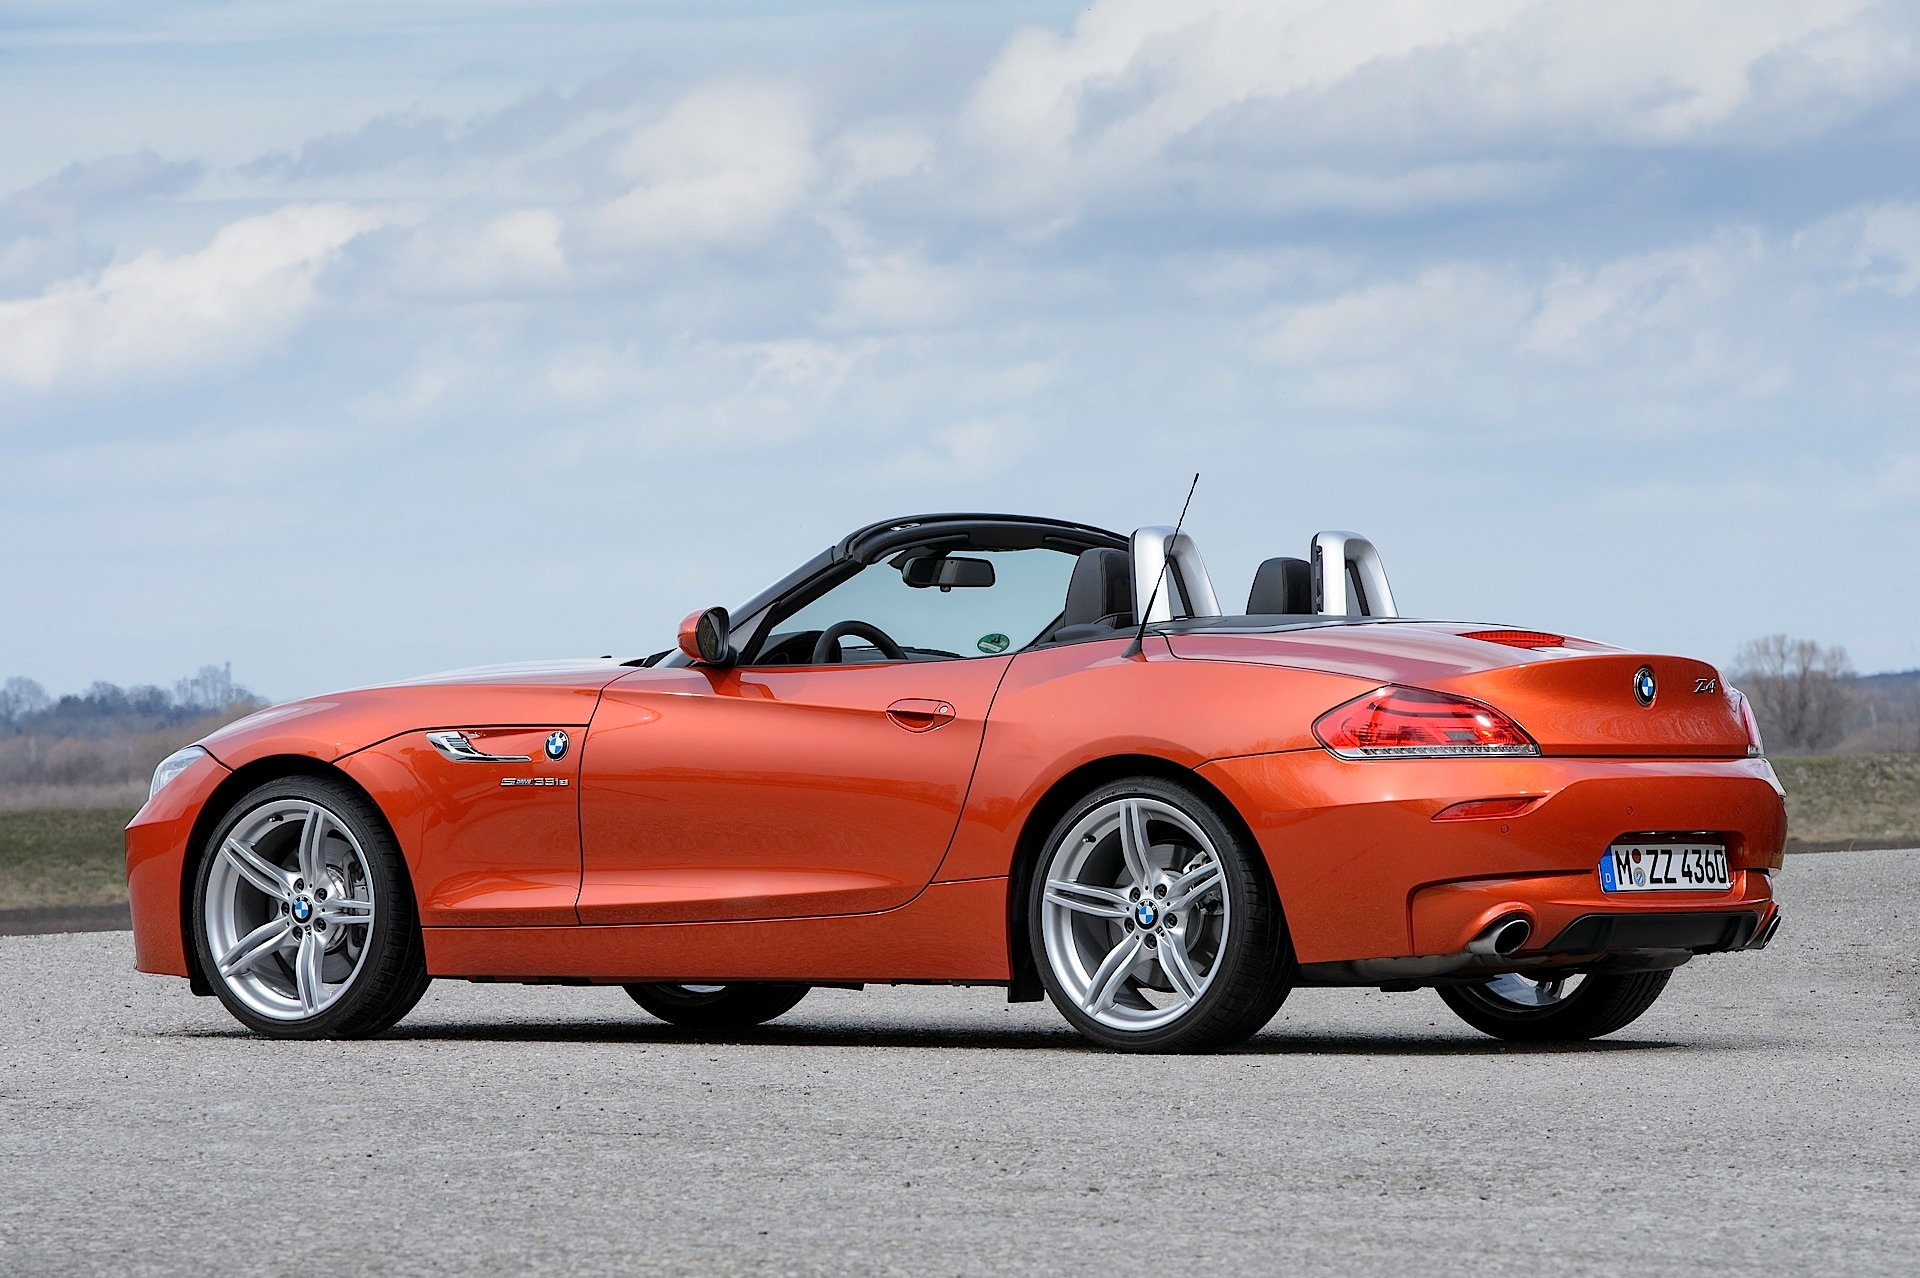 Lci Bmw E89 Z4 Poses For New Photo Shoot Autoevolution